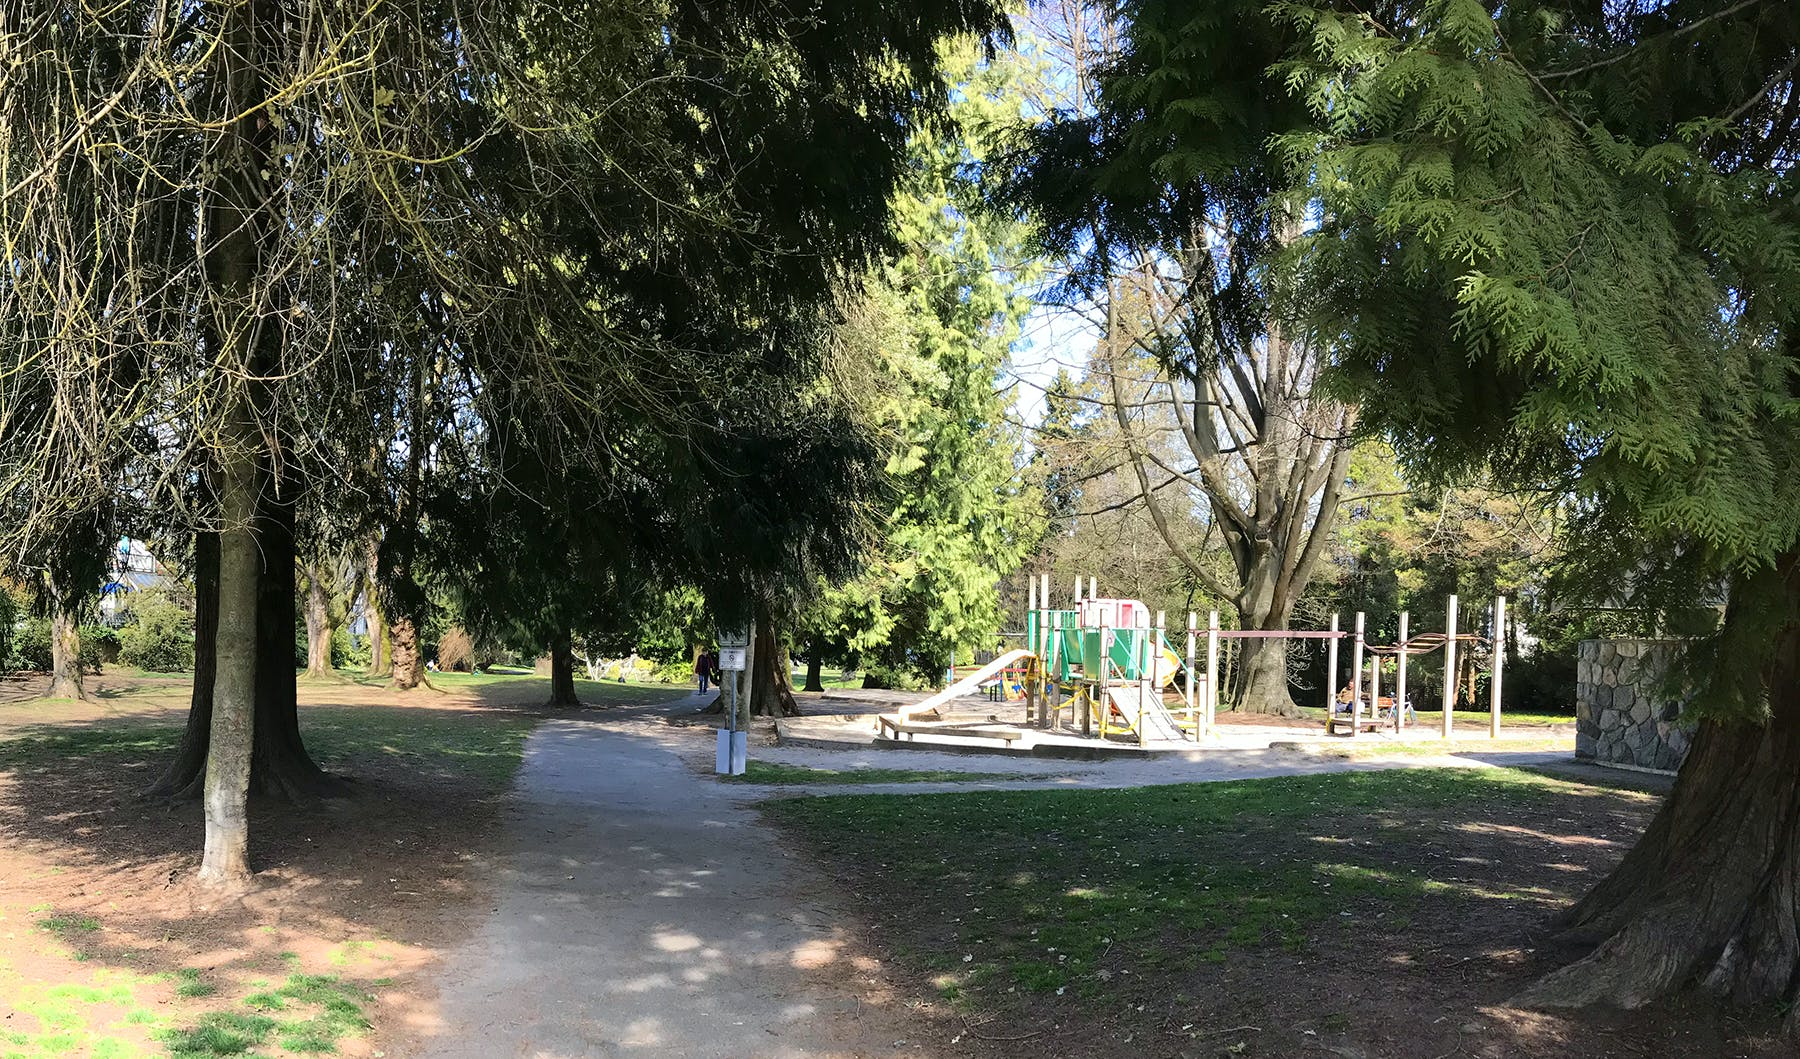 Concept A Location (Existing Playground) - North View